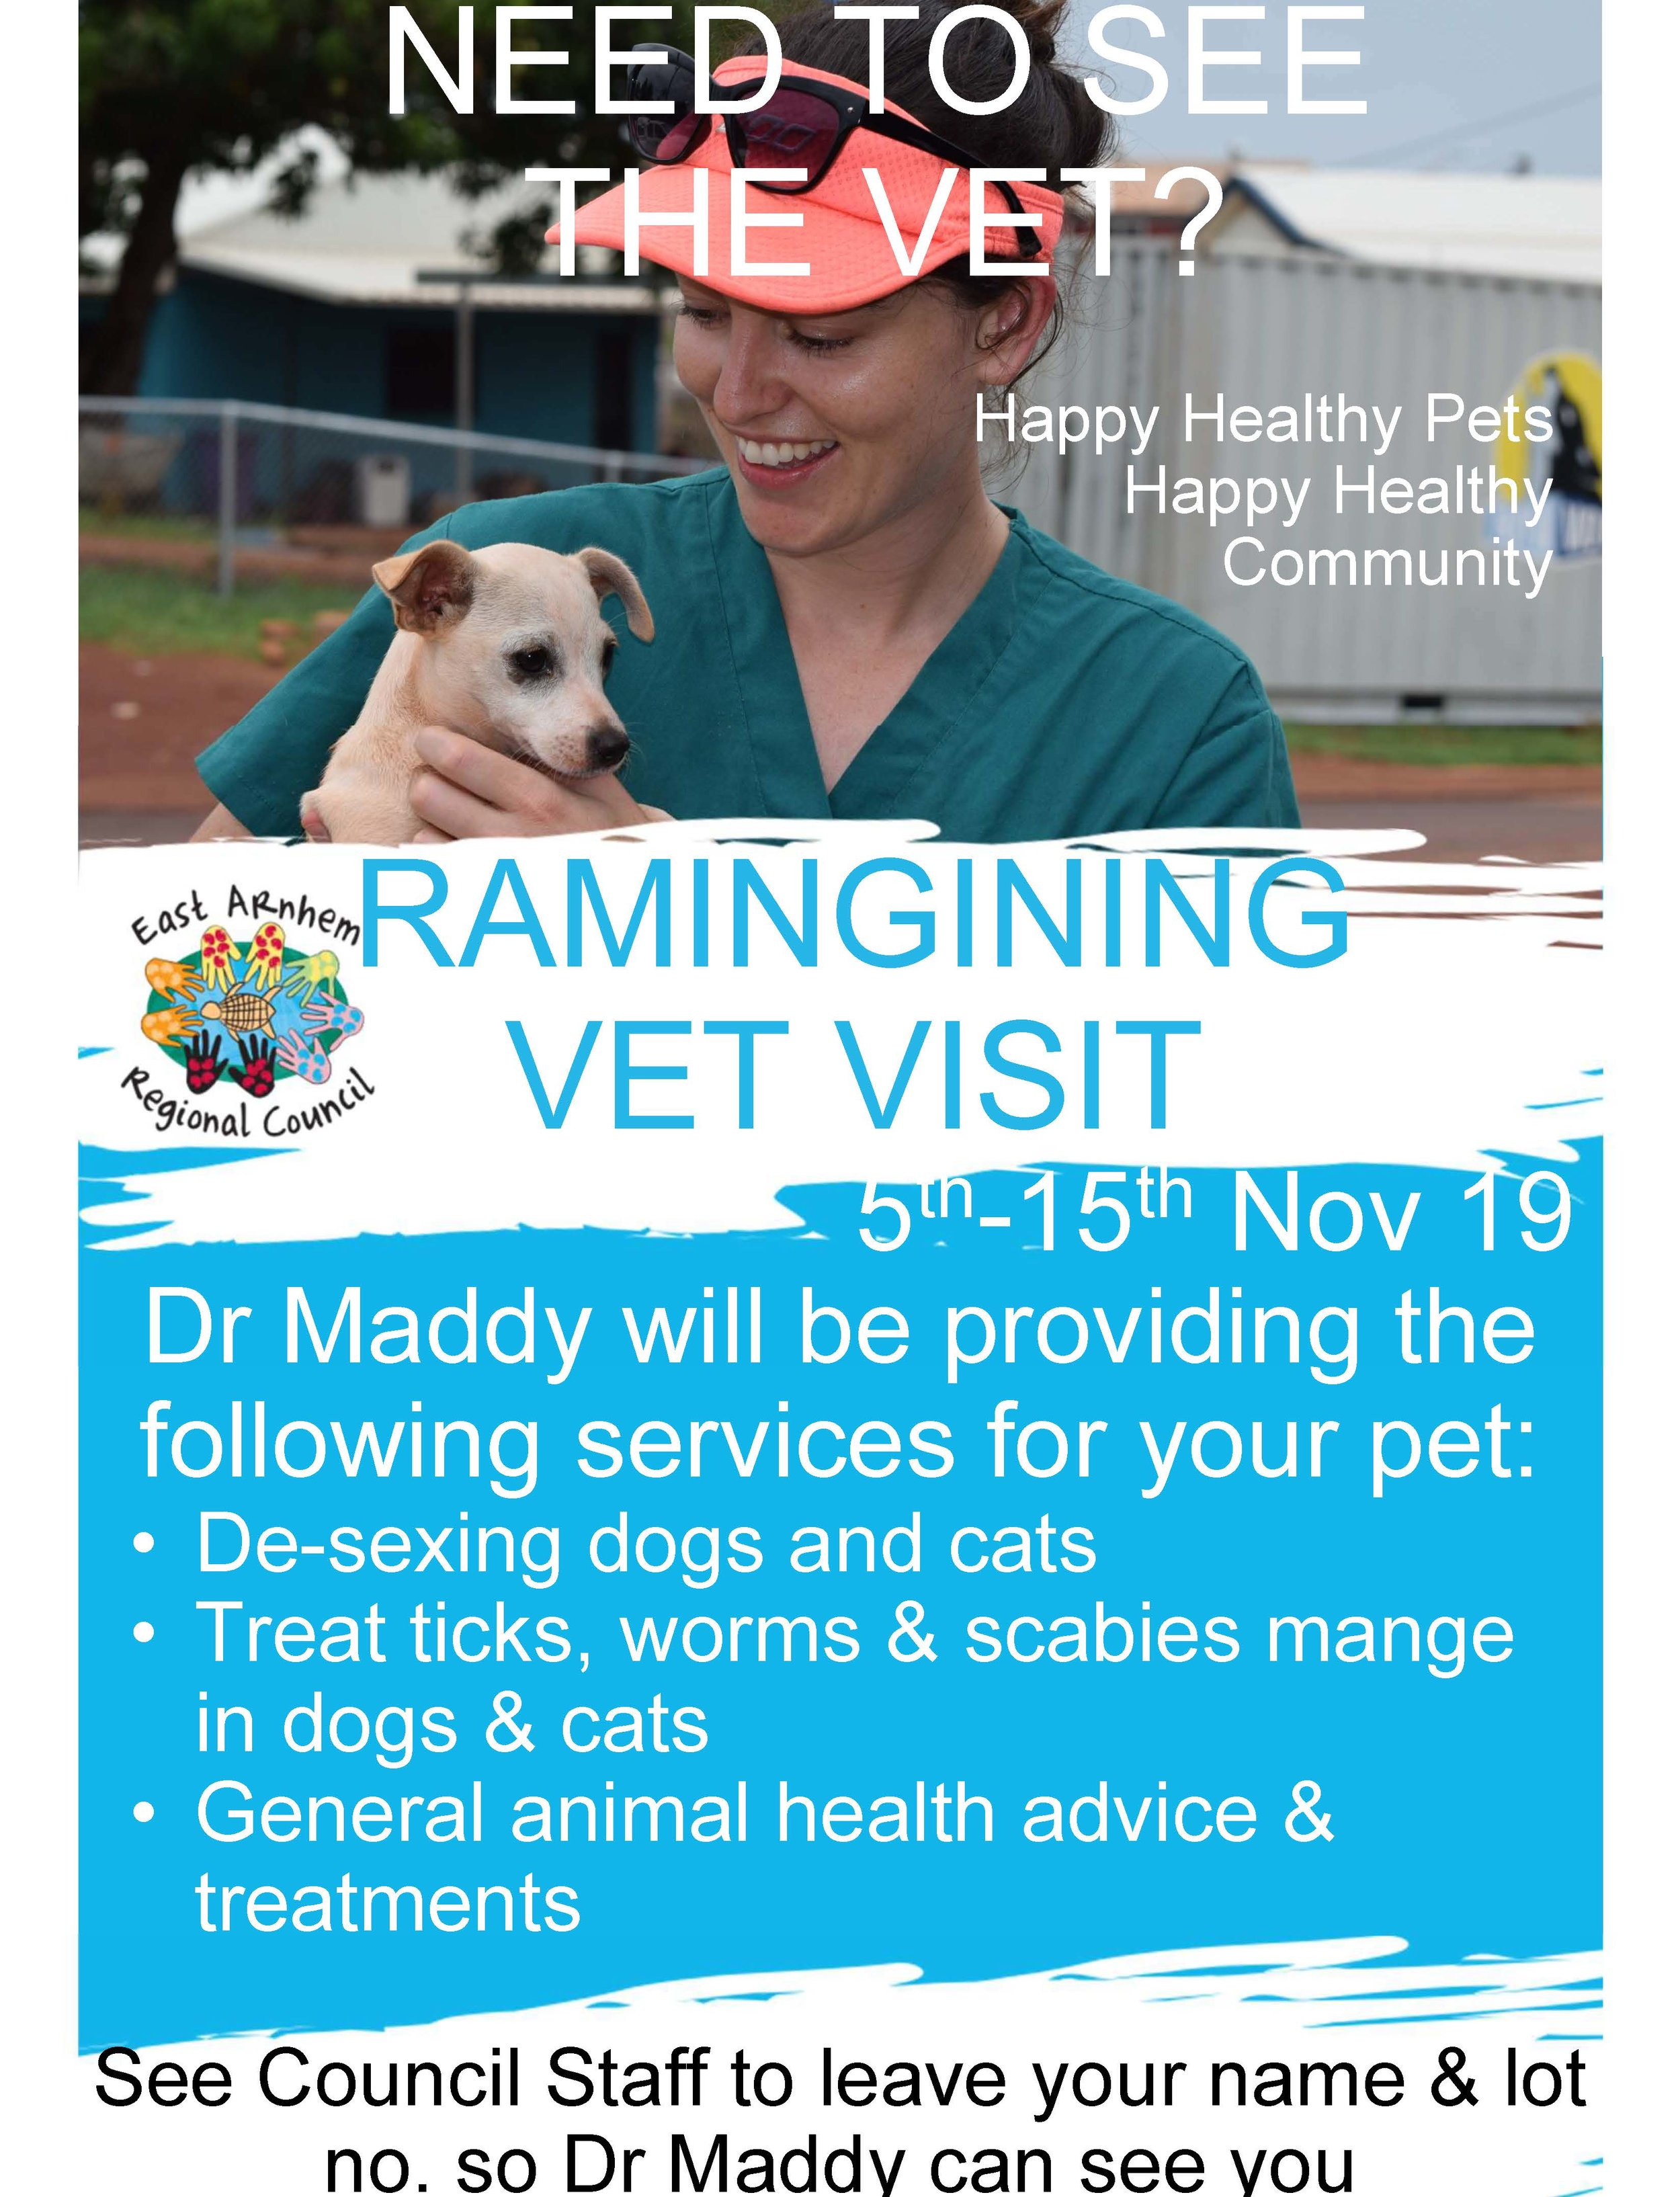 Bring your pet to see the vet! - Council Vet Dr Maddy will be in Ramingining from the 5 - 15 November